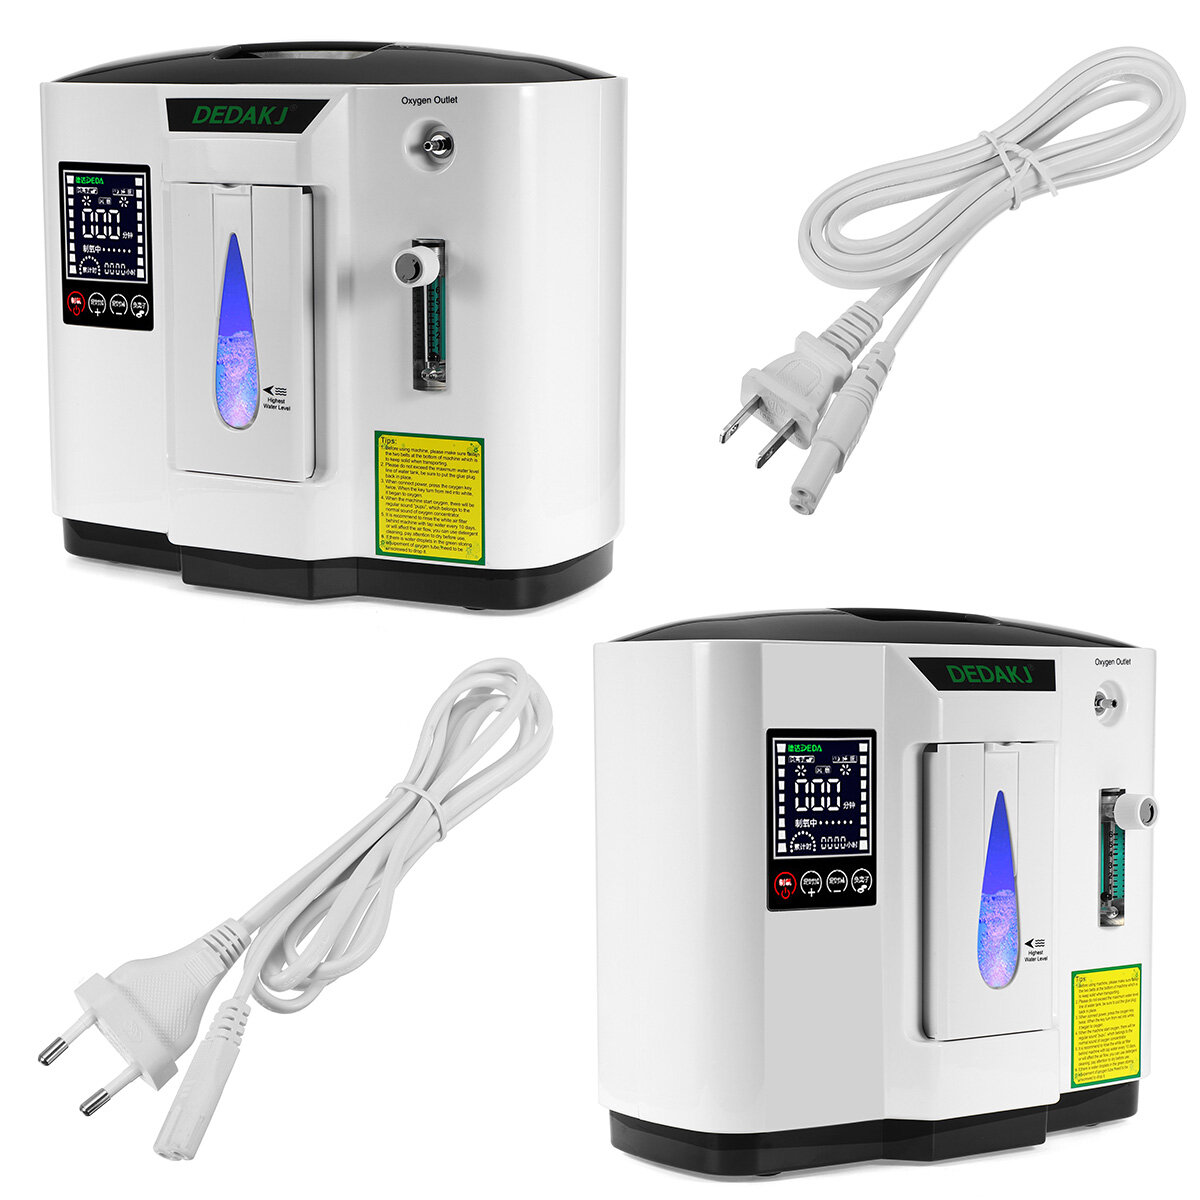 DDT-1A 6L Oxygen Concentrator Portable Home Oxygen Generator Medical Machine